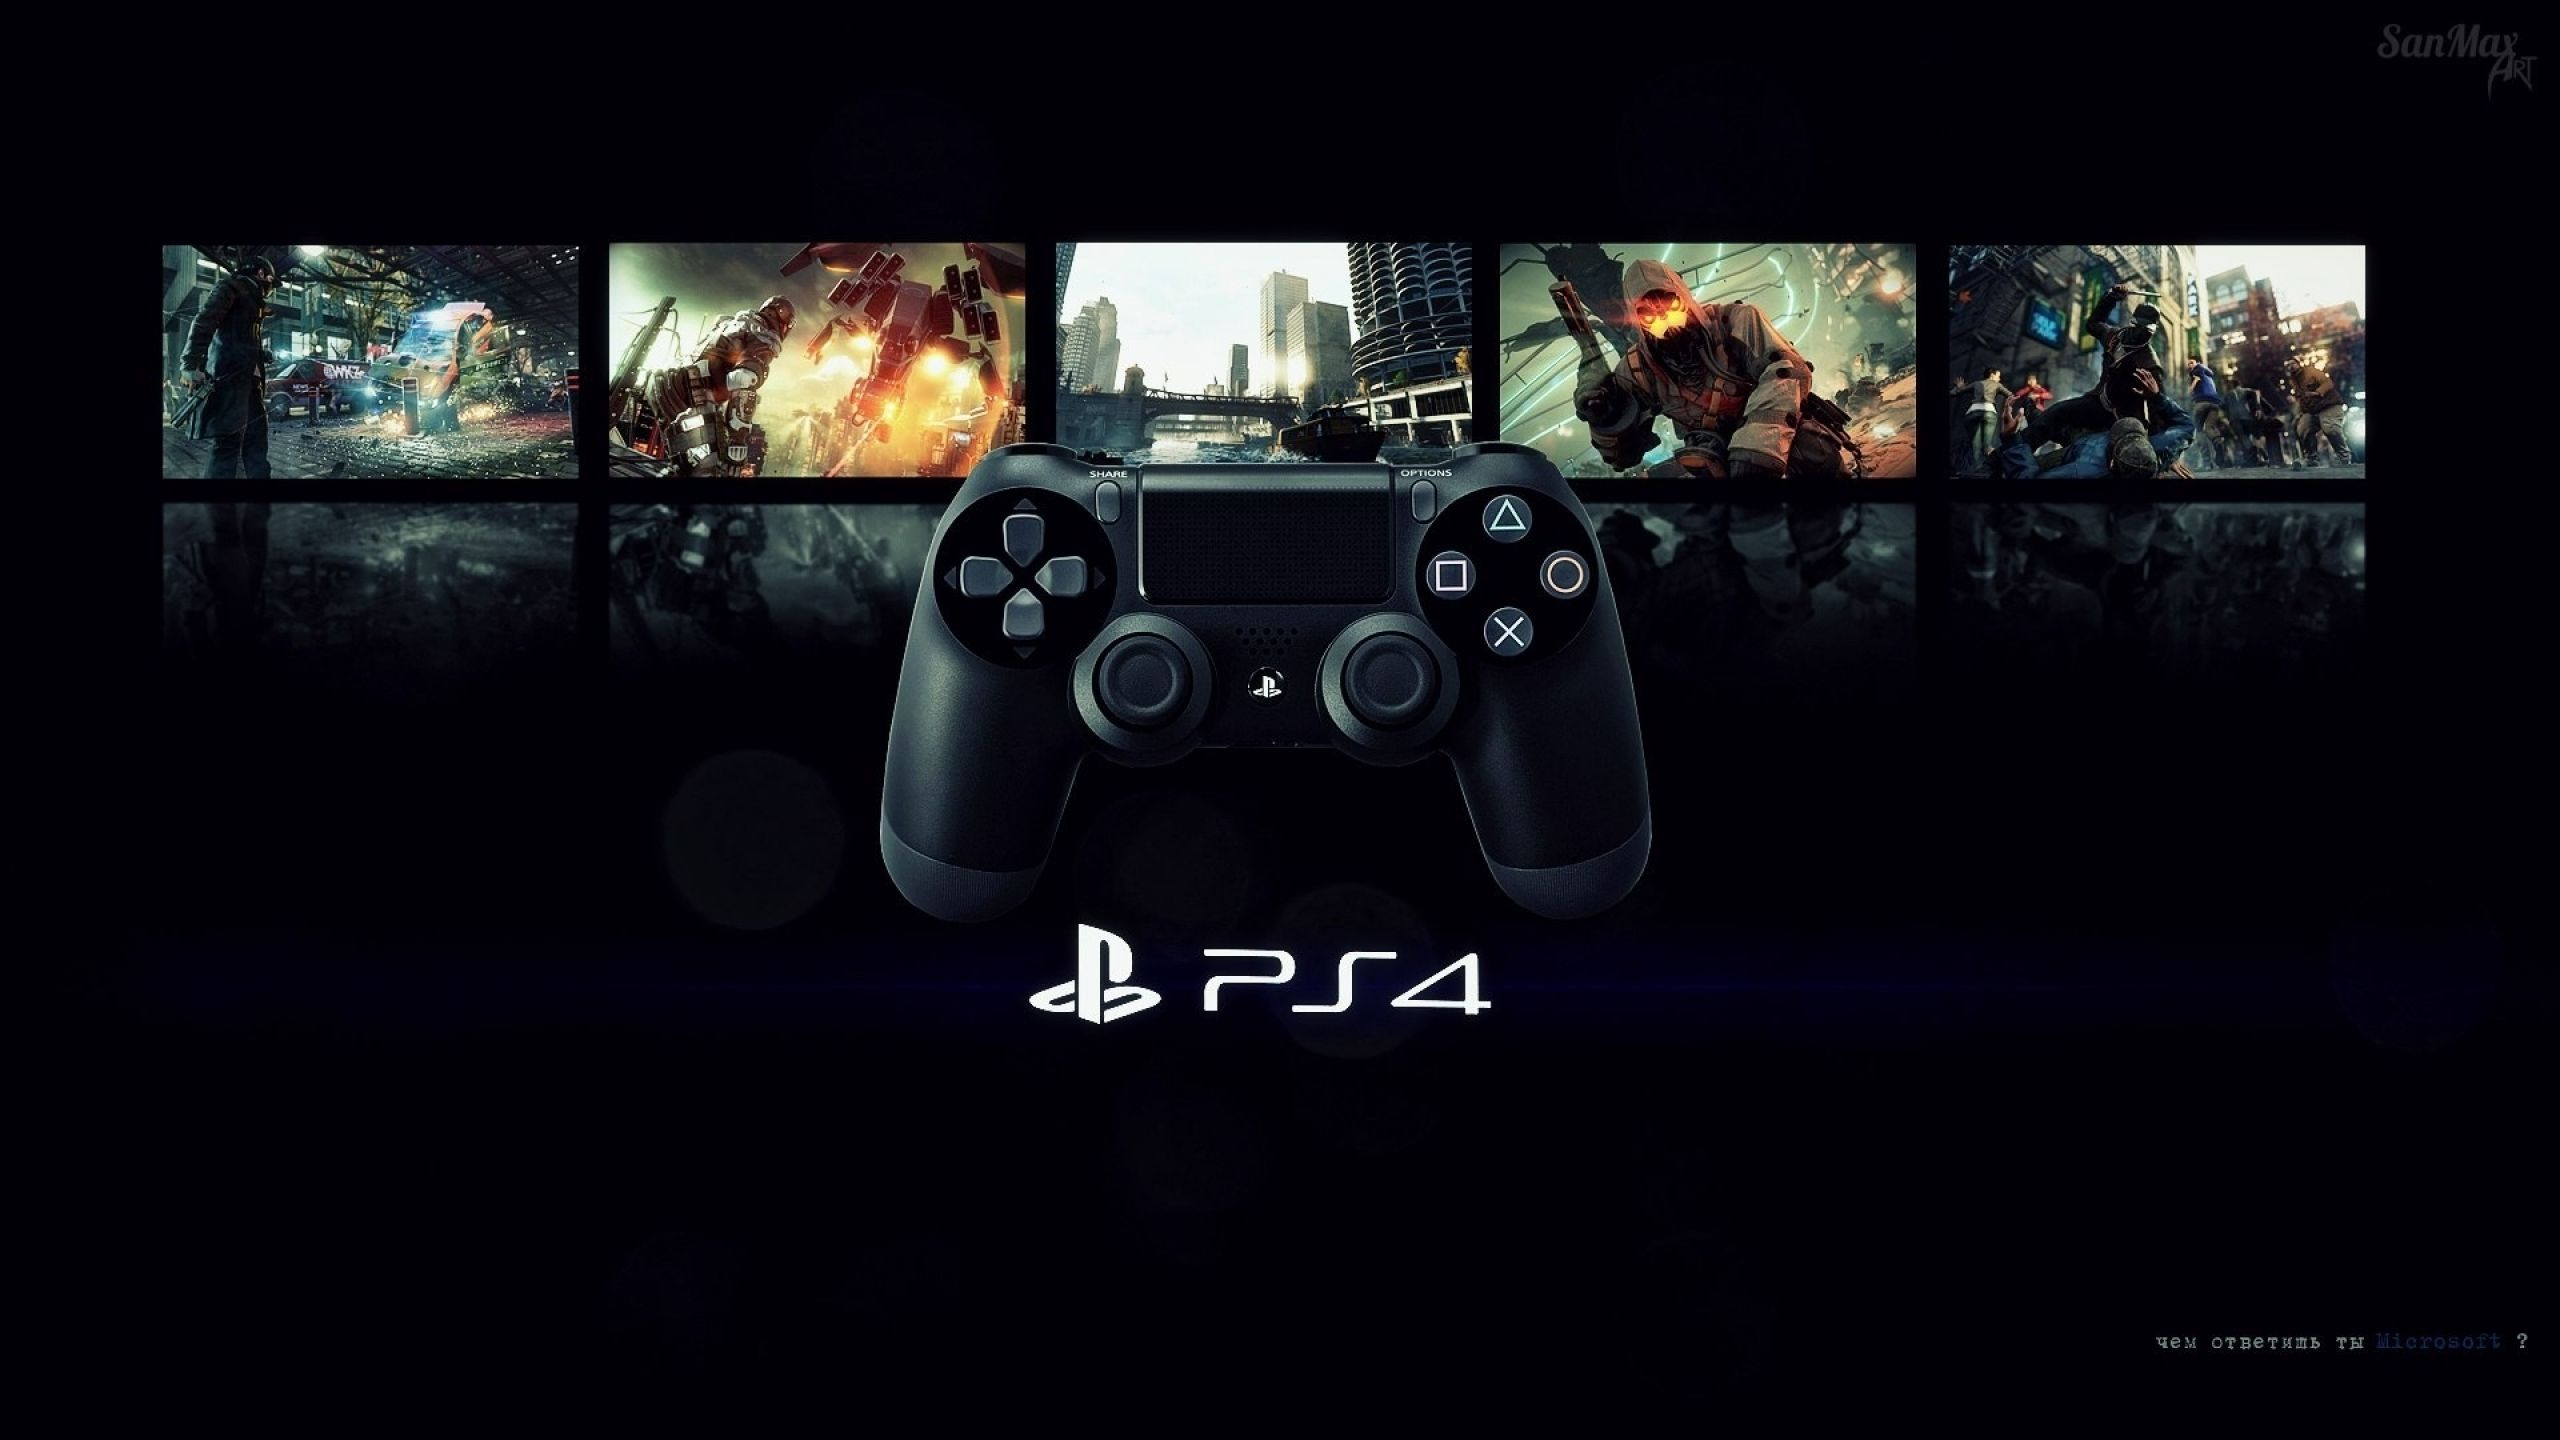 Ps4 Desktop Wallpapers Top Free Ps4 Desktop Backgrounds